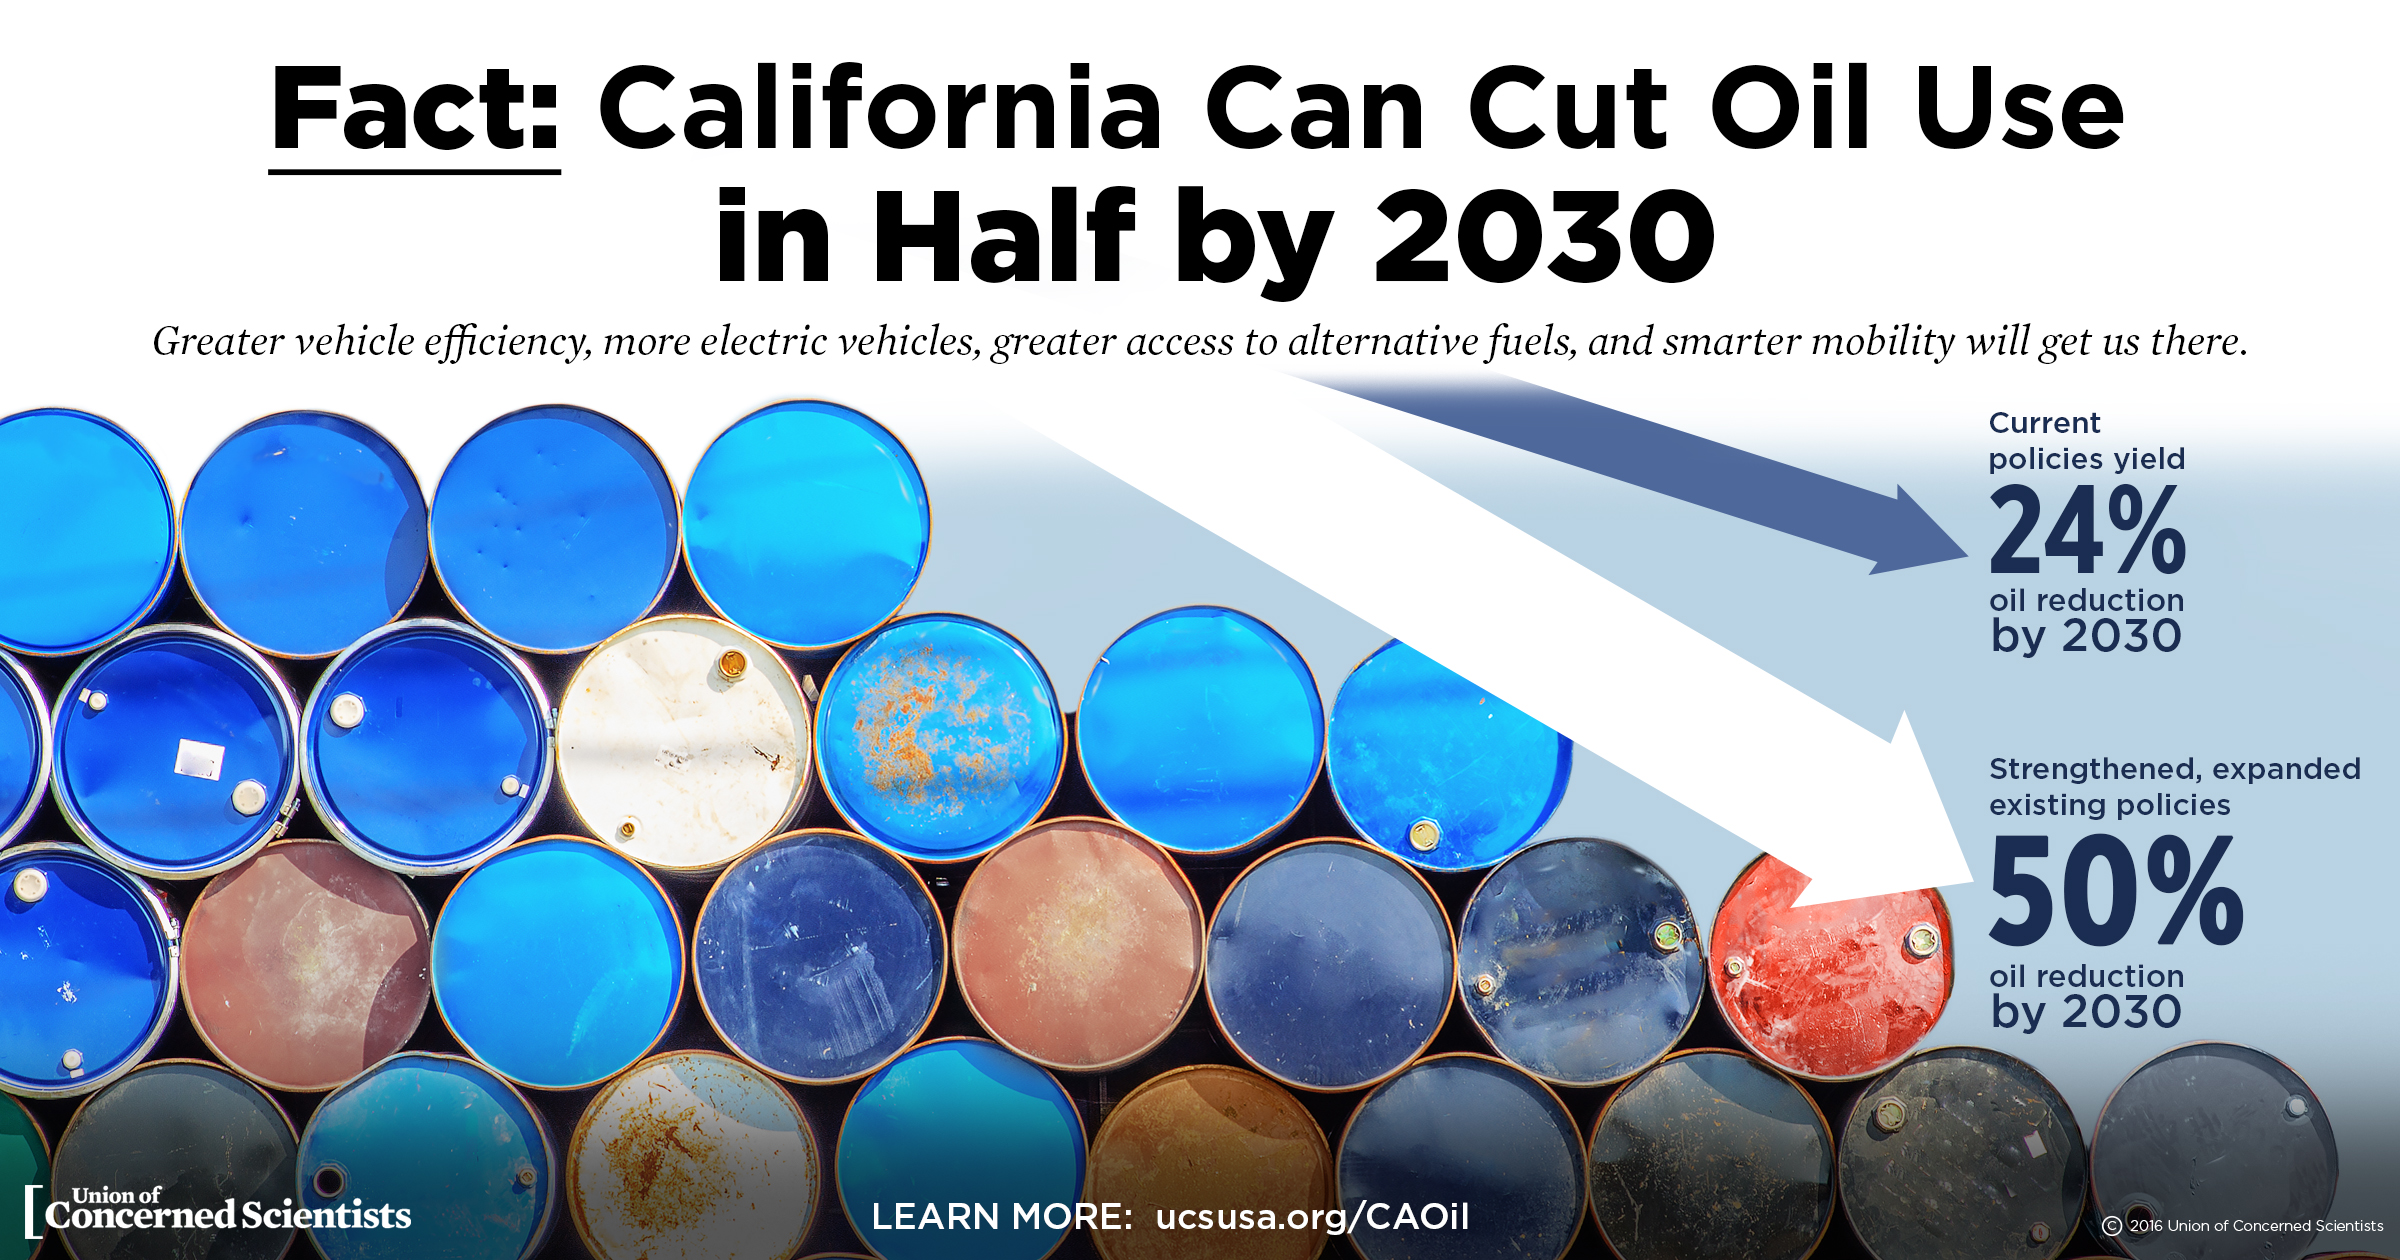 California can cut its oil use by 2030, but it'll take investment.